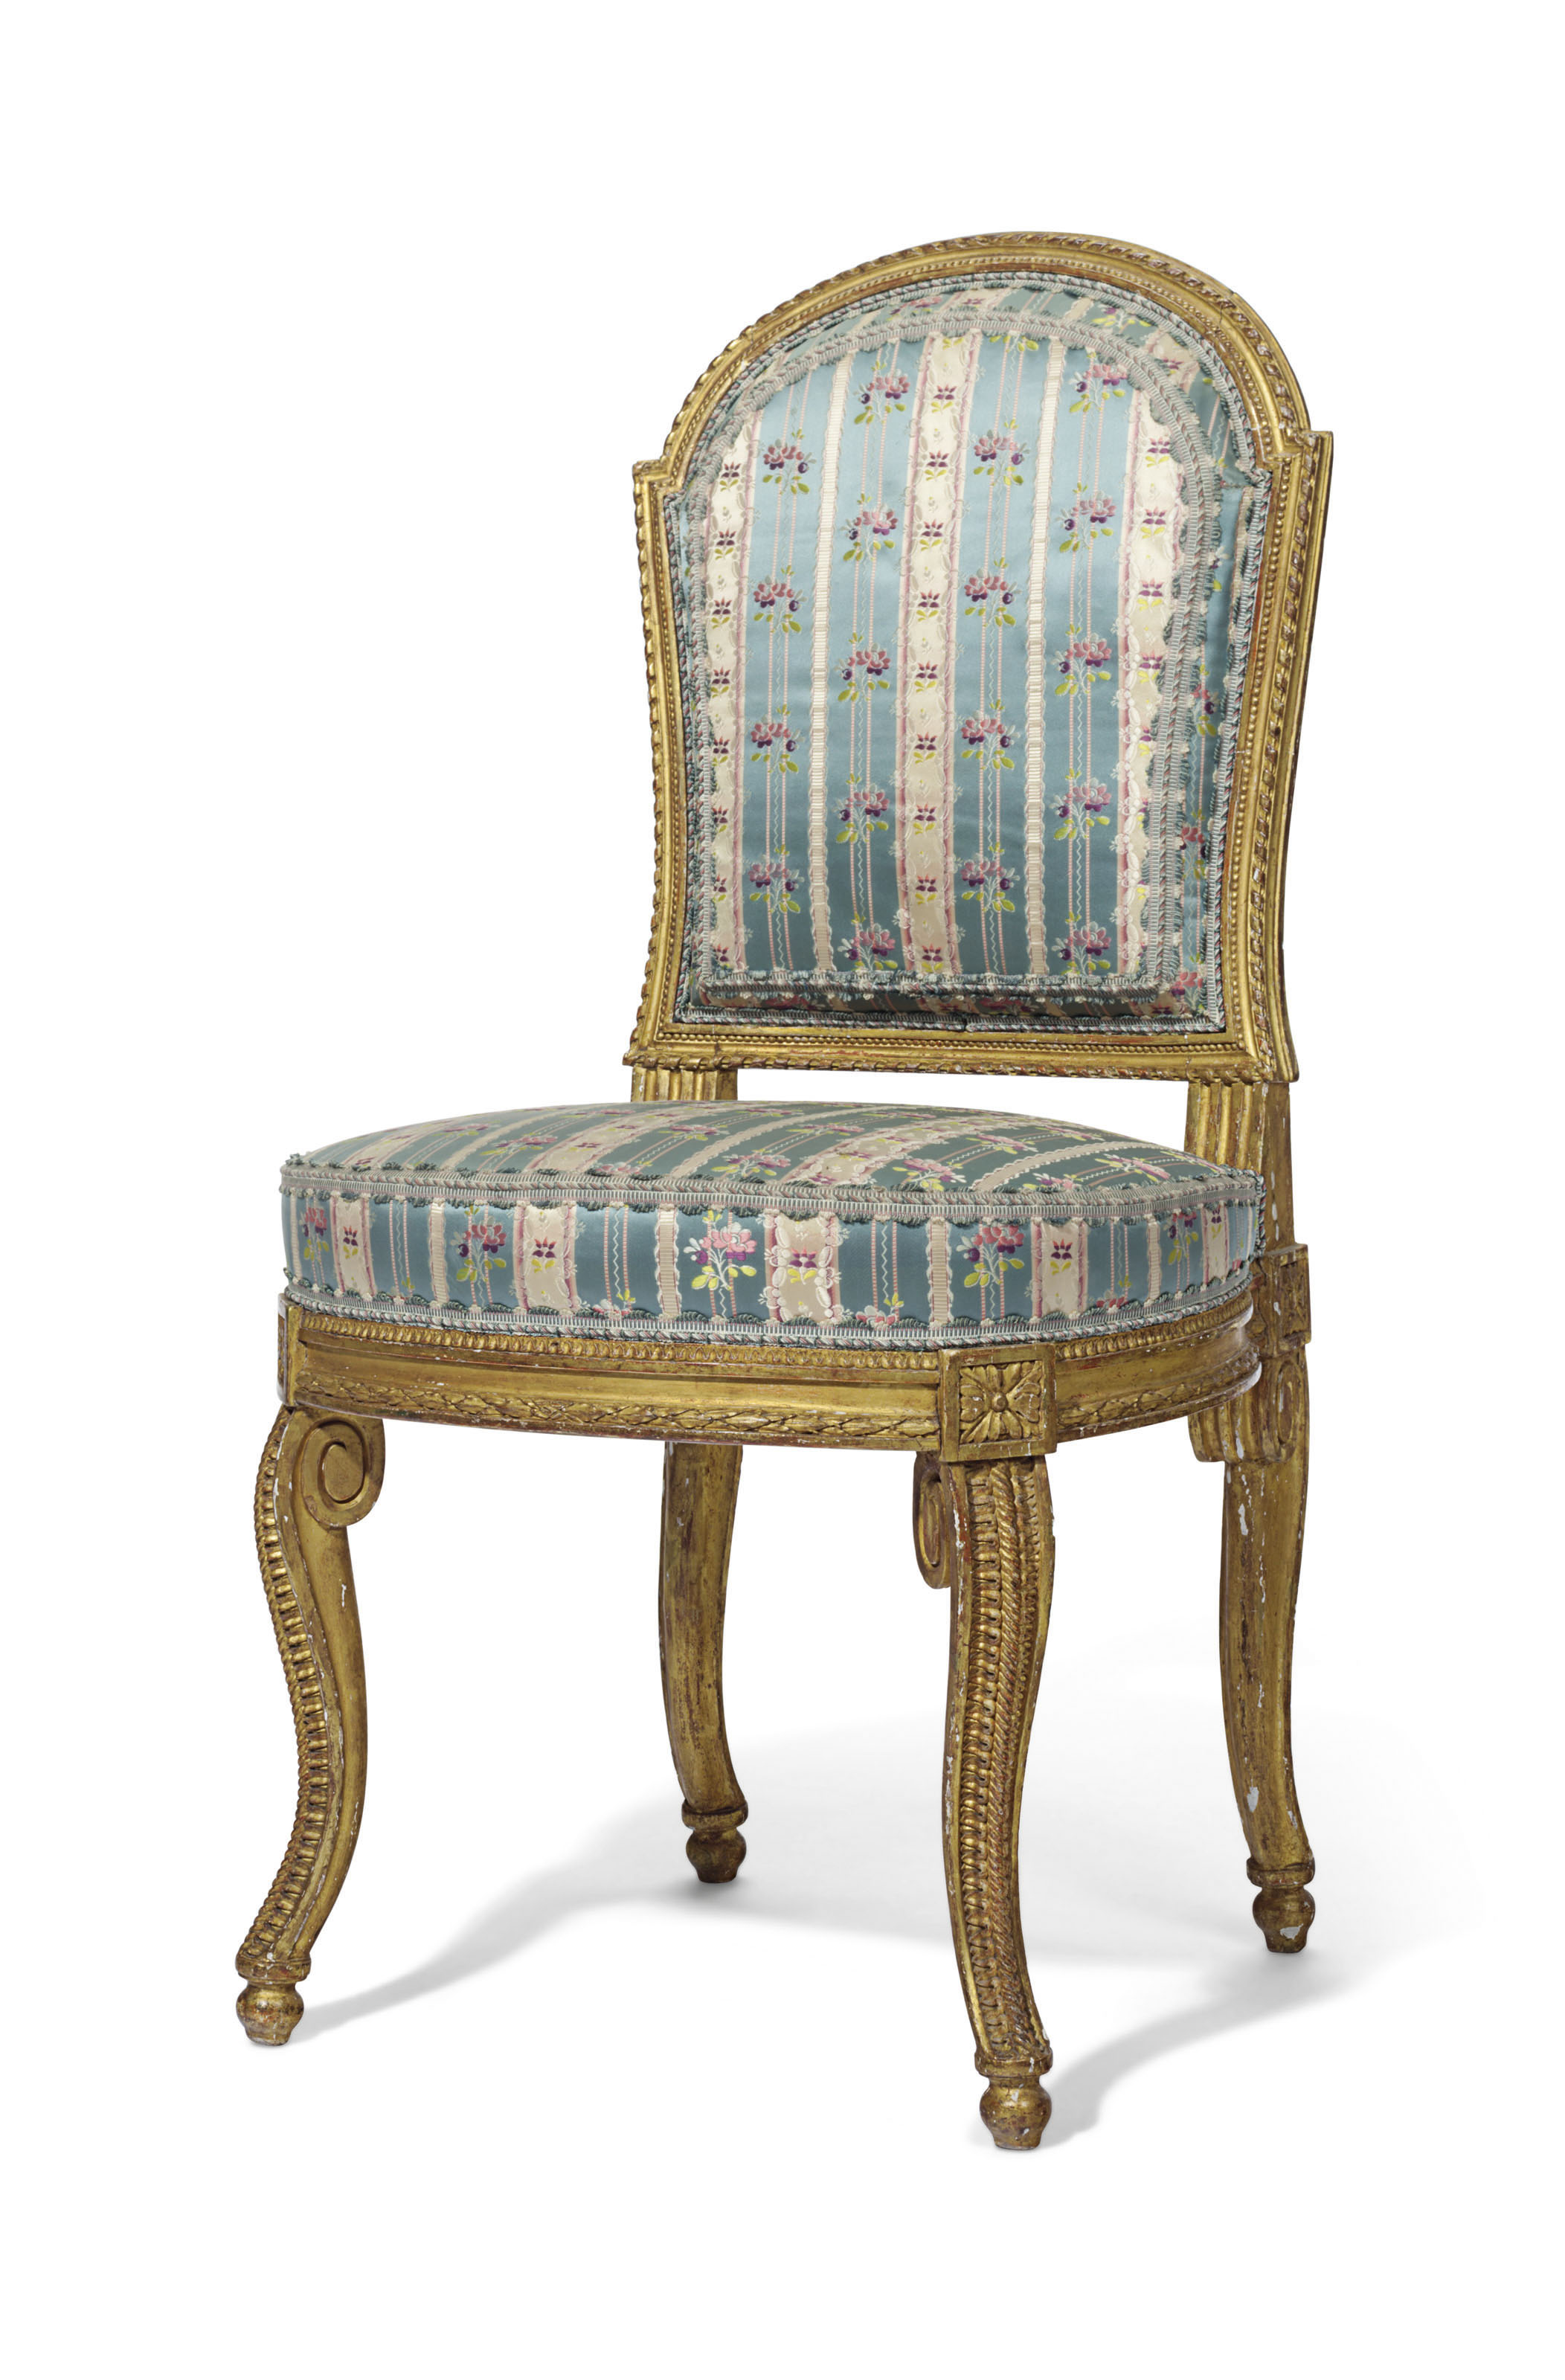 A LATE LOUIS XV GILTWOOD CHAISE